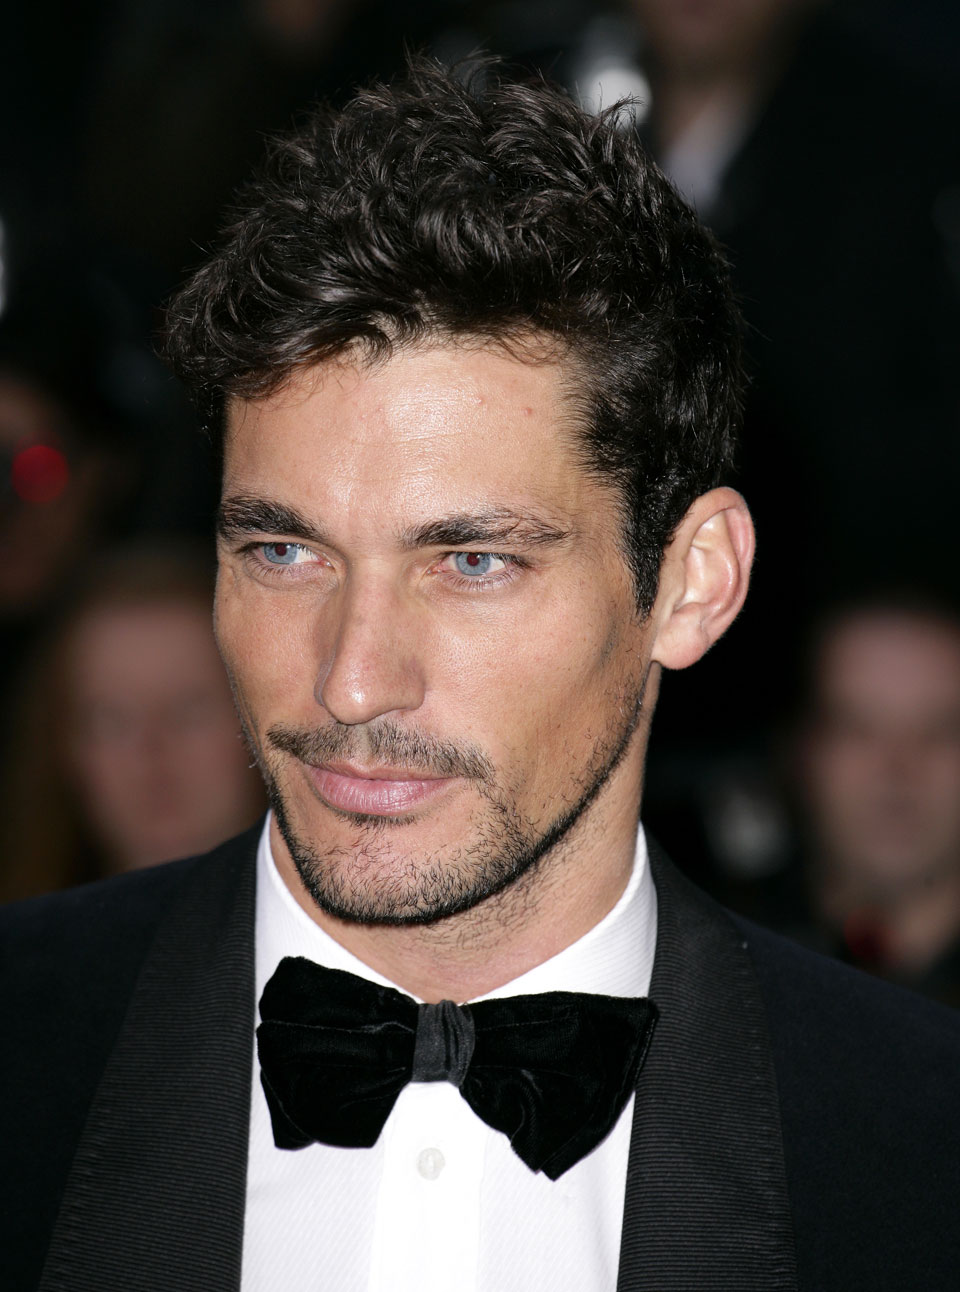 David Gandy supports International Women's Day action by appearing on panel